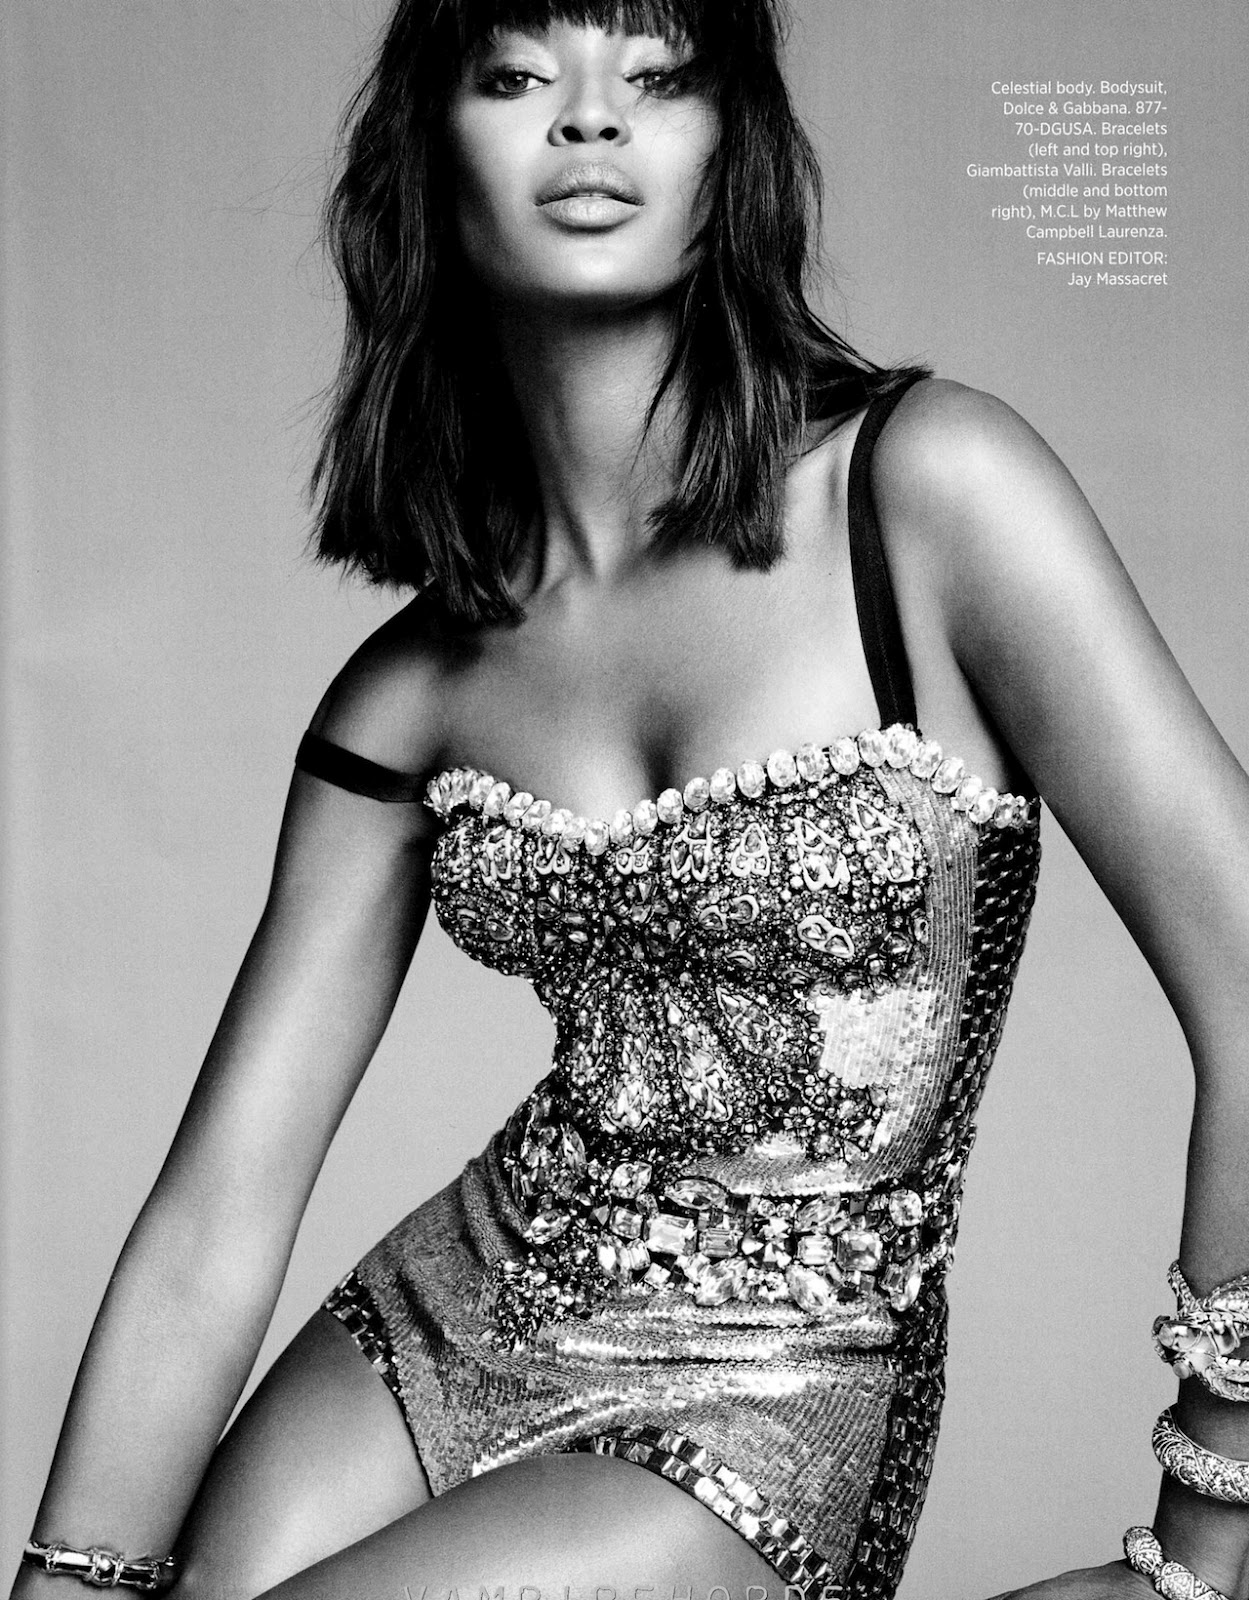 http://2.bp.blogspot.com/-suZ_MGl1XcE/Ty5ZS3_fQDI/AAAAAAAA9t8/ixaPaaJWYe4/s1600/fashion_scans_remastered-naomi_campbell-harpers_bazaar_usa-march_2012-scanned_by_vampirehorde-hq-1.jpg